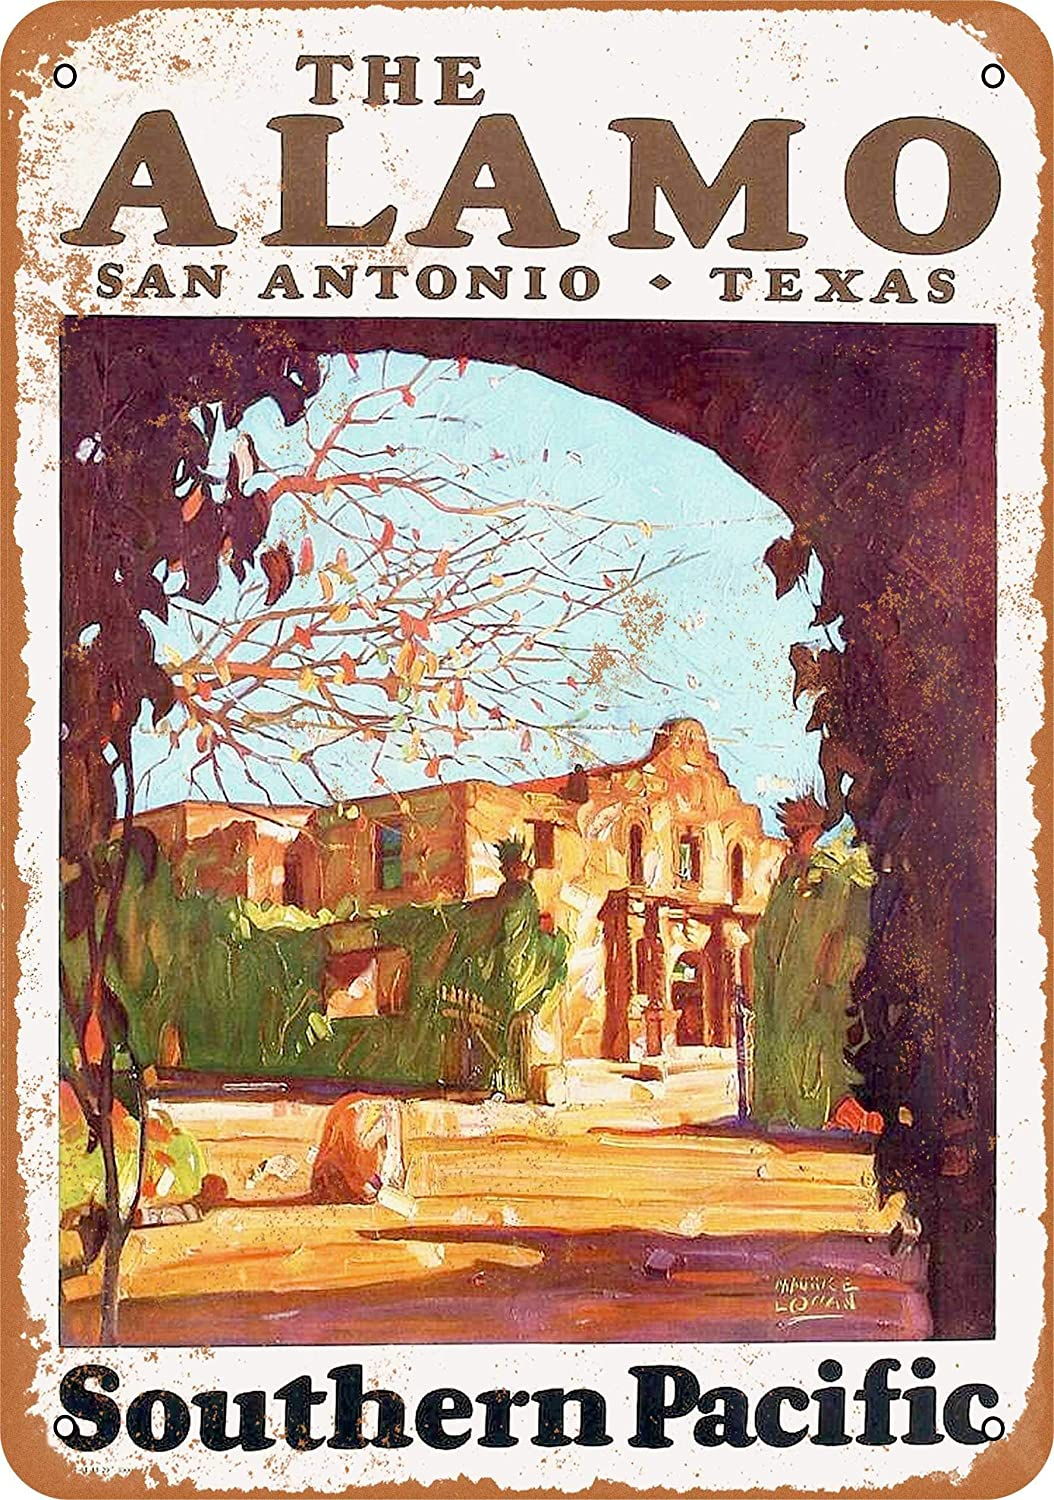 Tamengi 7''x10''Metal Sign 1929 Southern Pacific Railroad to The Alamo San Antonio Texas Vintage Look Made in USA